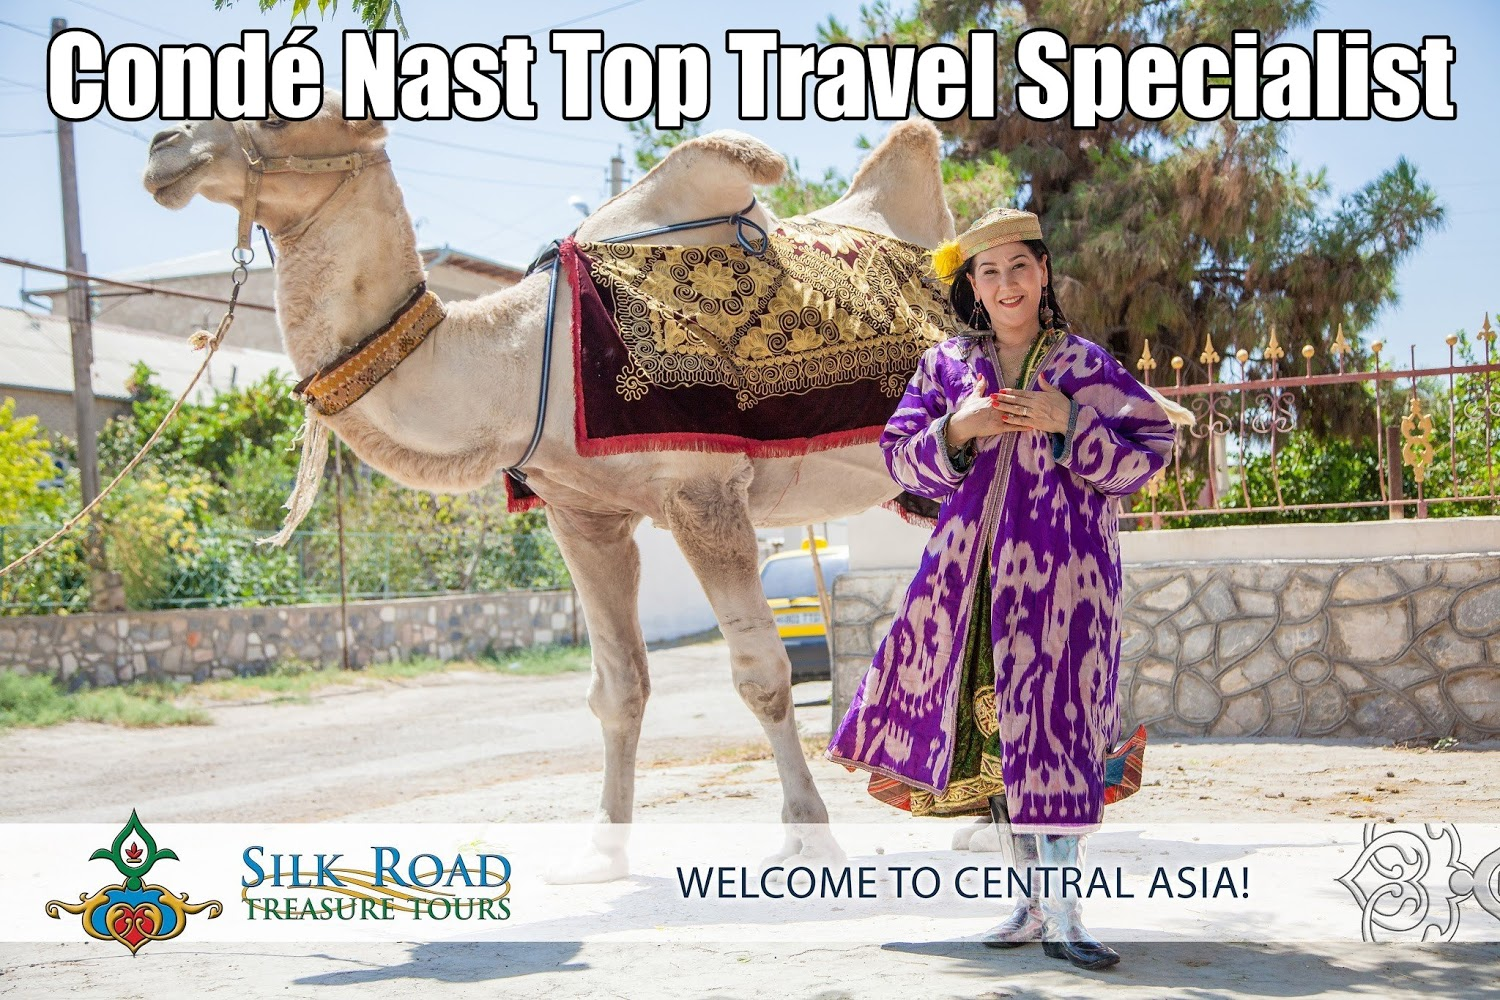 zulya rajabova conde nast top travel specialist for central asia cr zulya